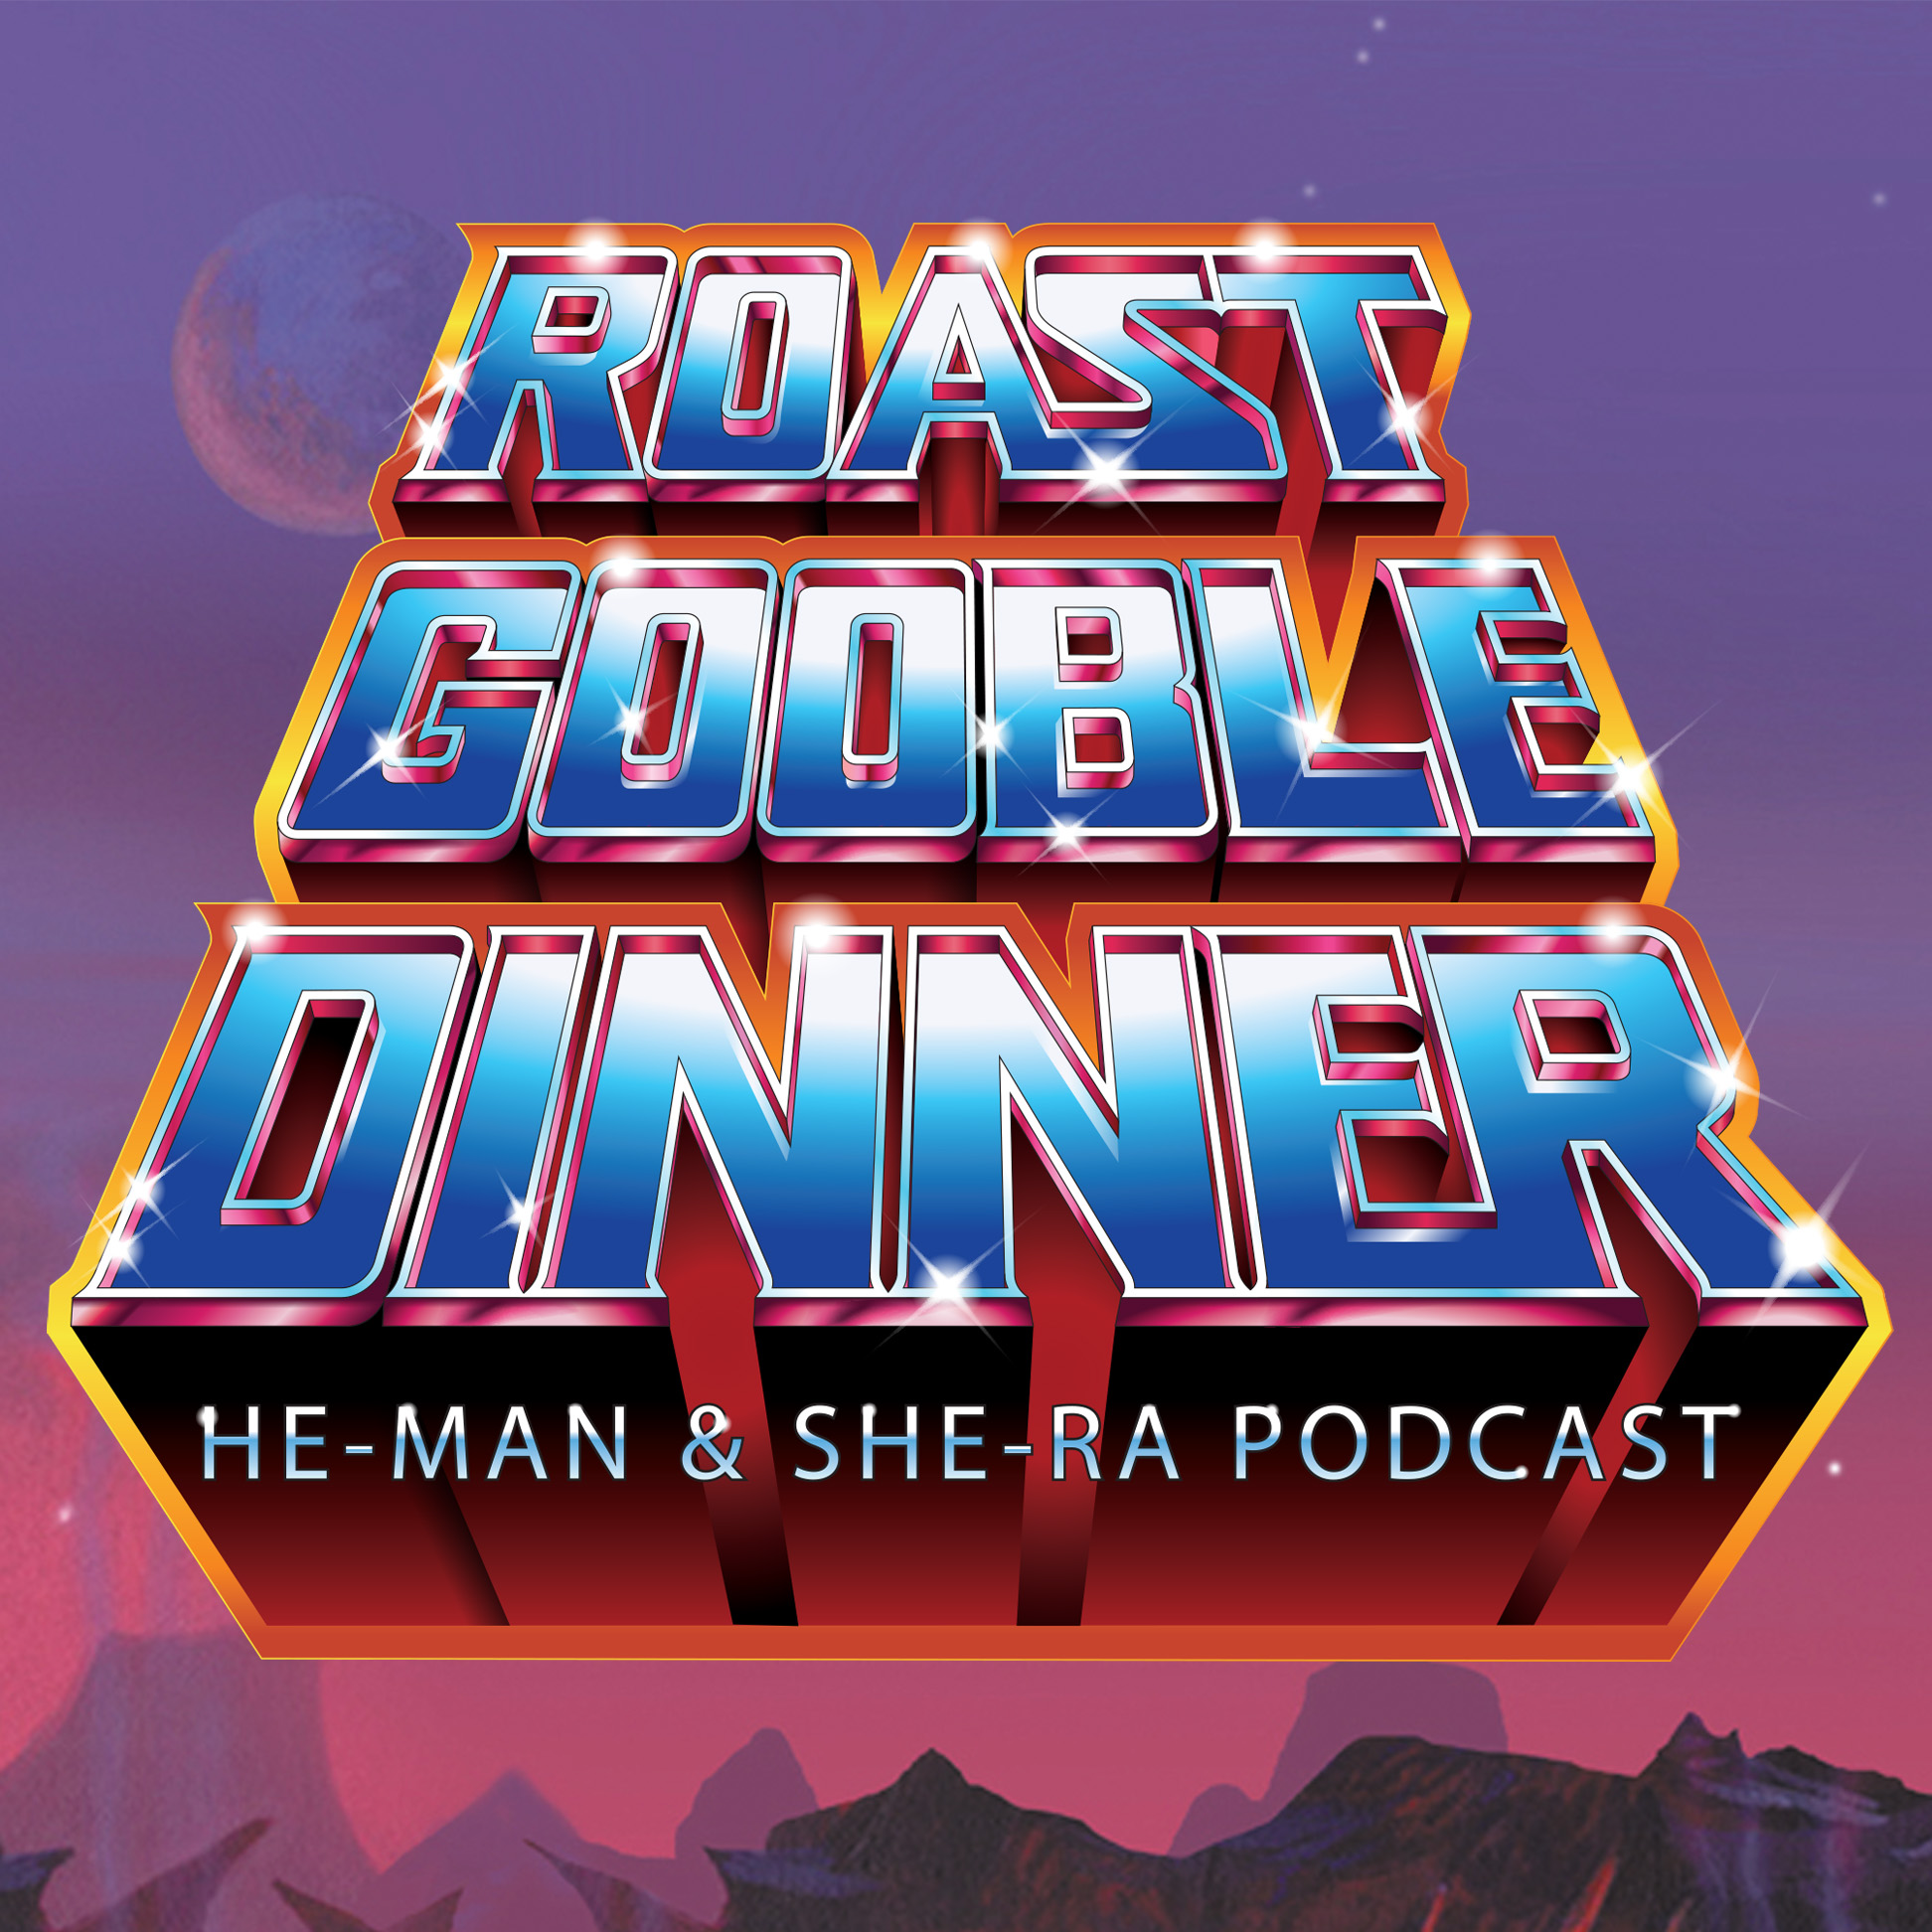 Episode 132 - He-Man.org's Roast Gooble Dinner